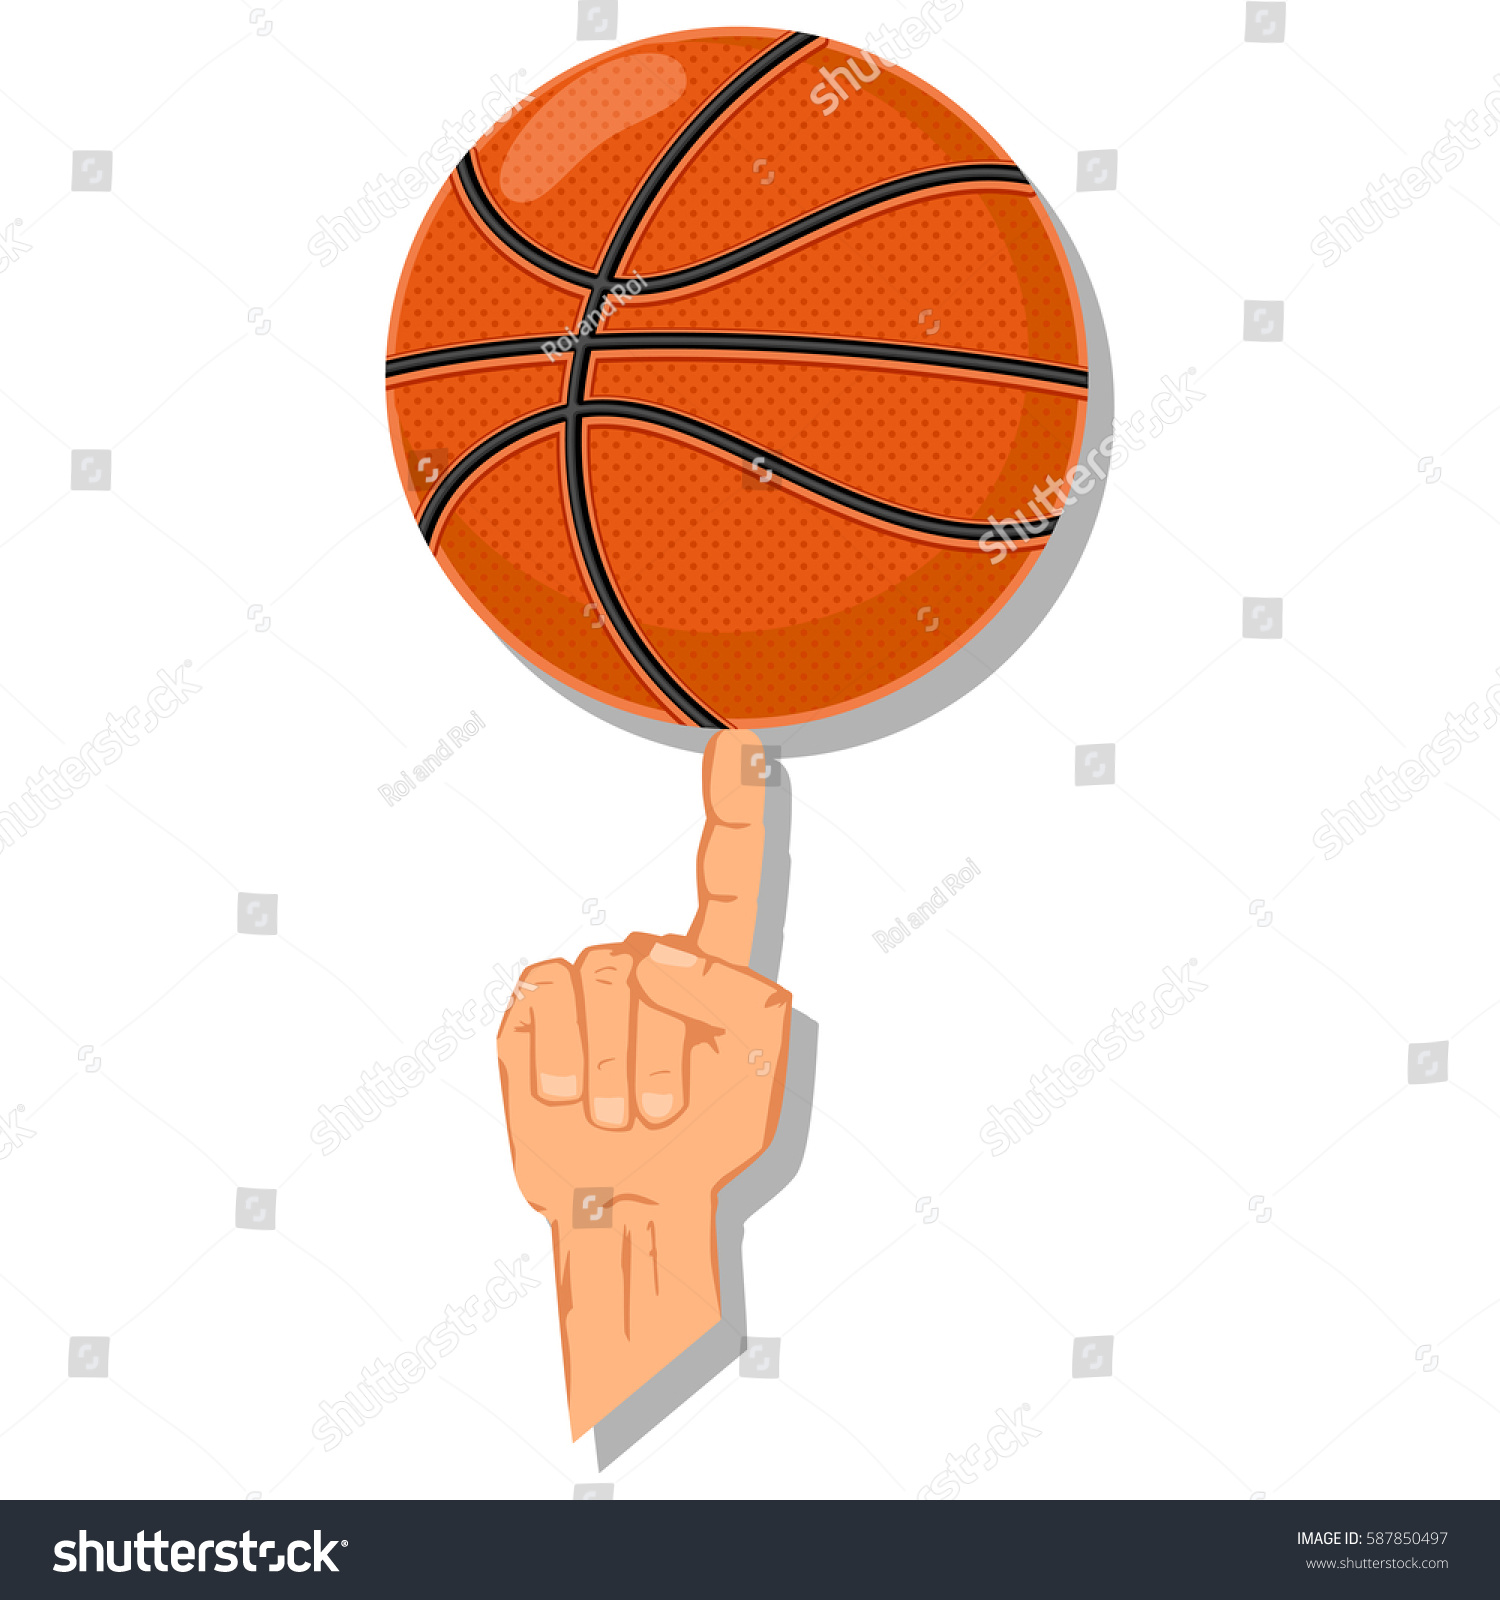 Spinning basketball on finger